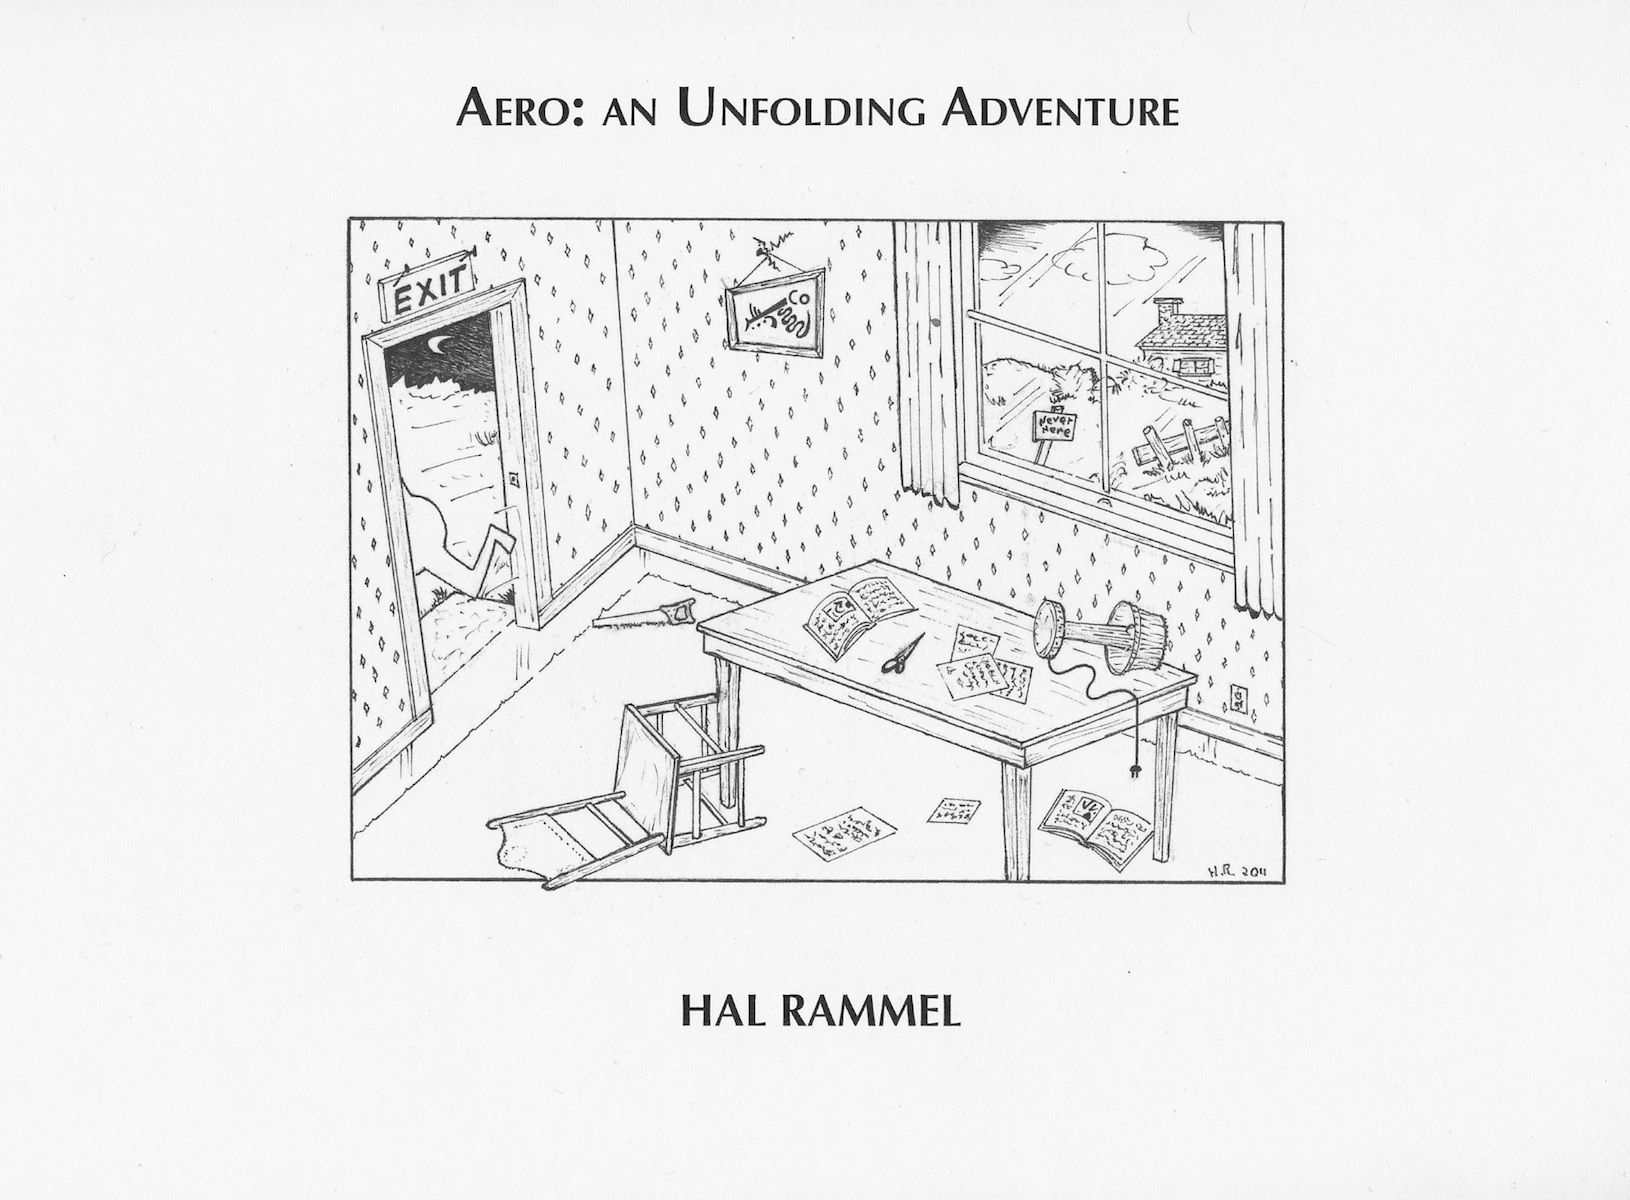 Aero: An Unfolding Adventure, 2009